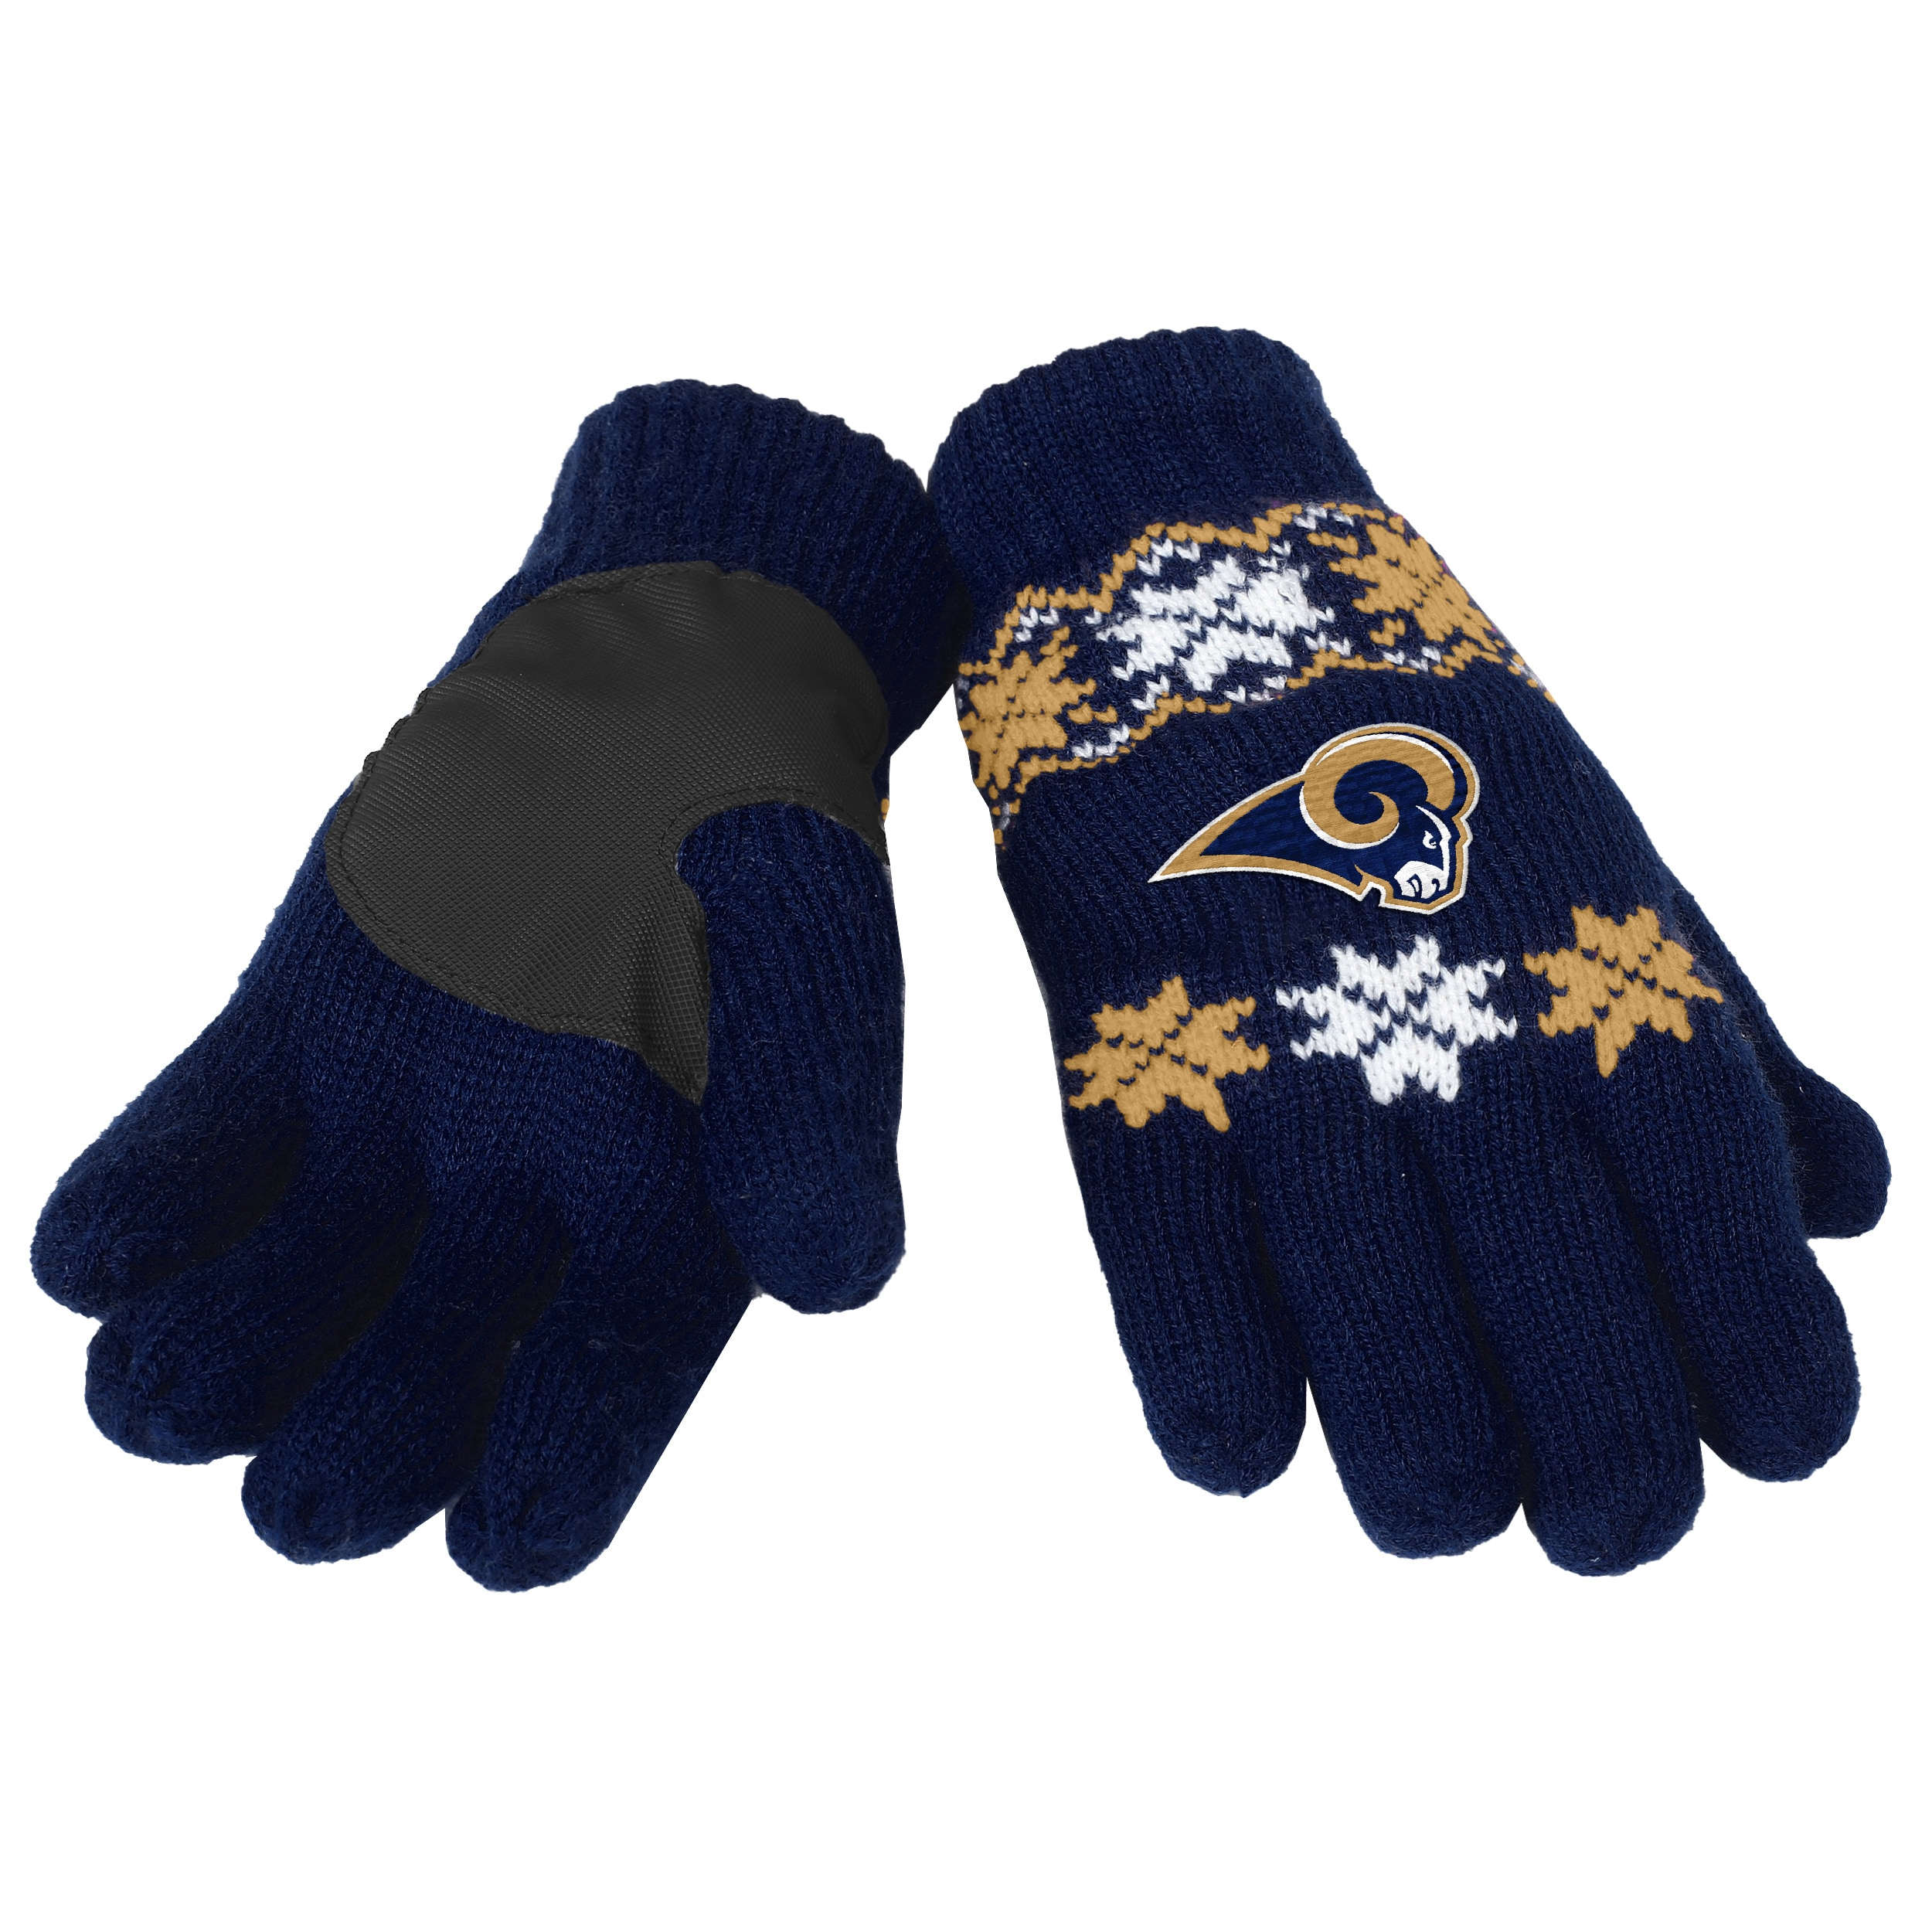 027d4f6017a Shop Forever Collectibles NFL St. Louis Rams Lodge Gloves with Padded Palms  - Free Shipping On Orders Over $45 - - 10693837